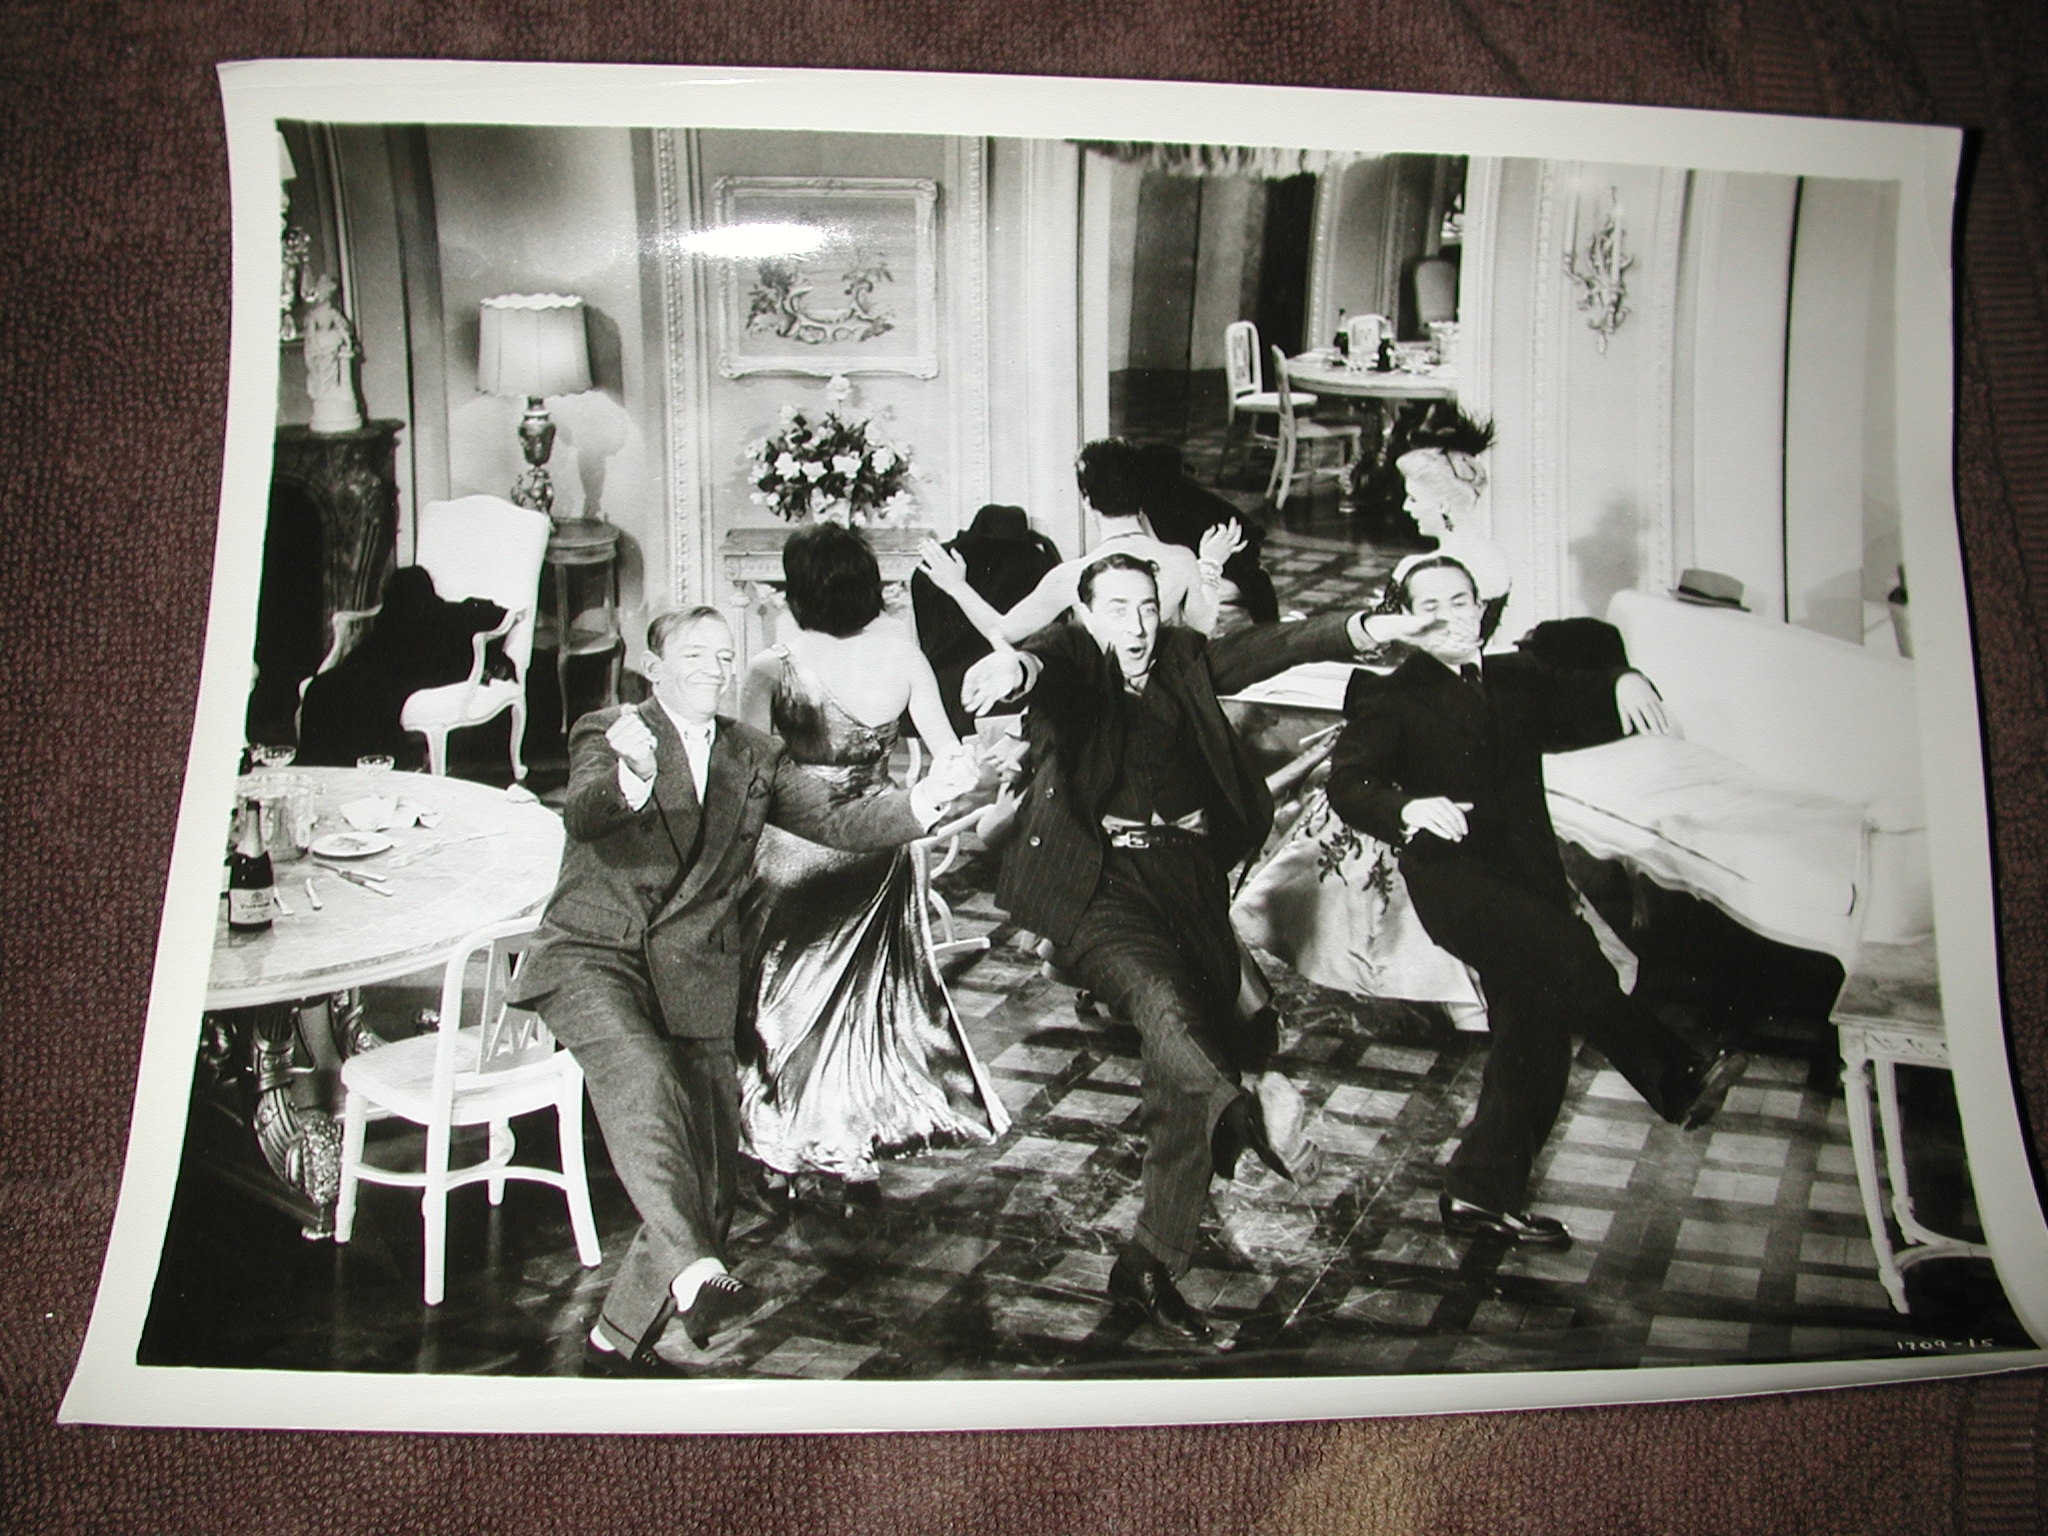 Miraculous Fred Astaire Peter Lorre And Janis Padge Silk Stockings Three Photos Download Free Architecture Designs Grimeyleaguecom